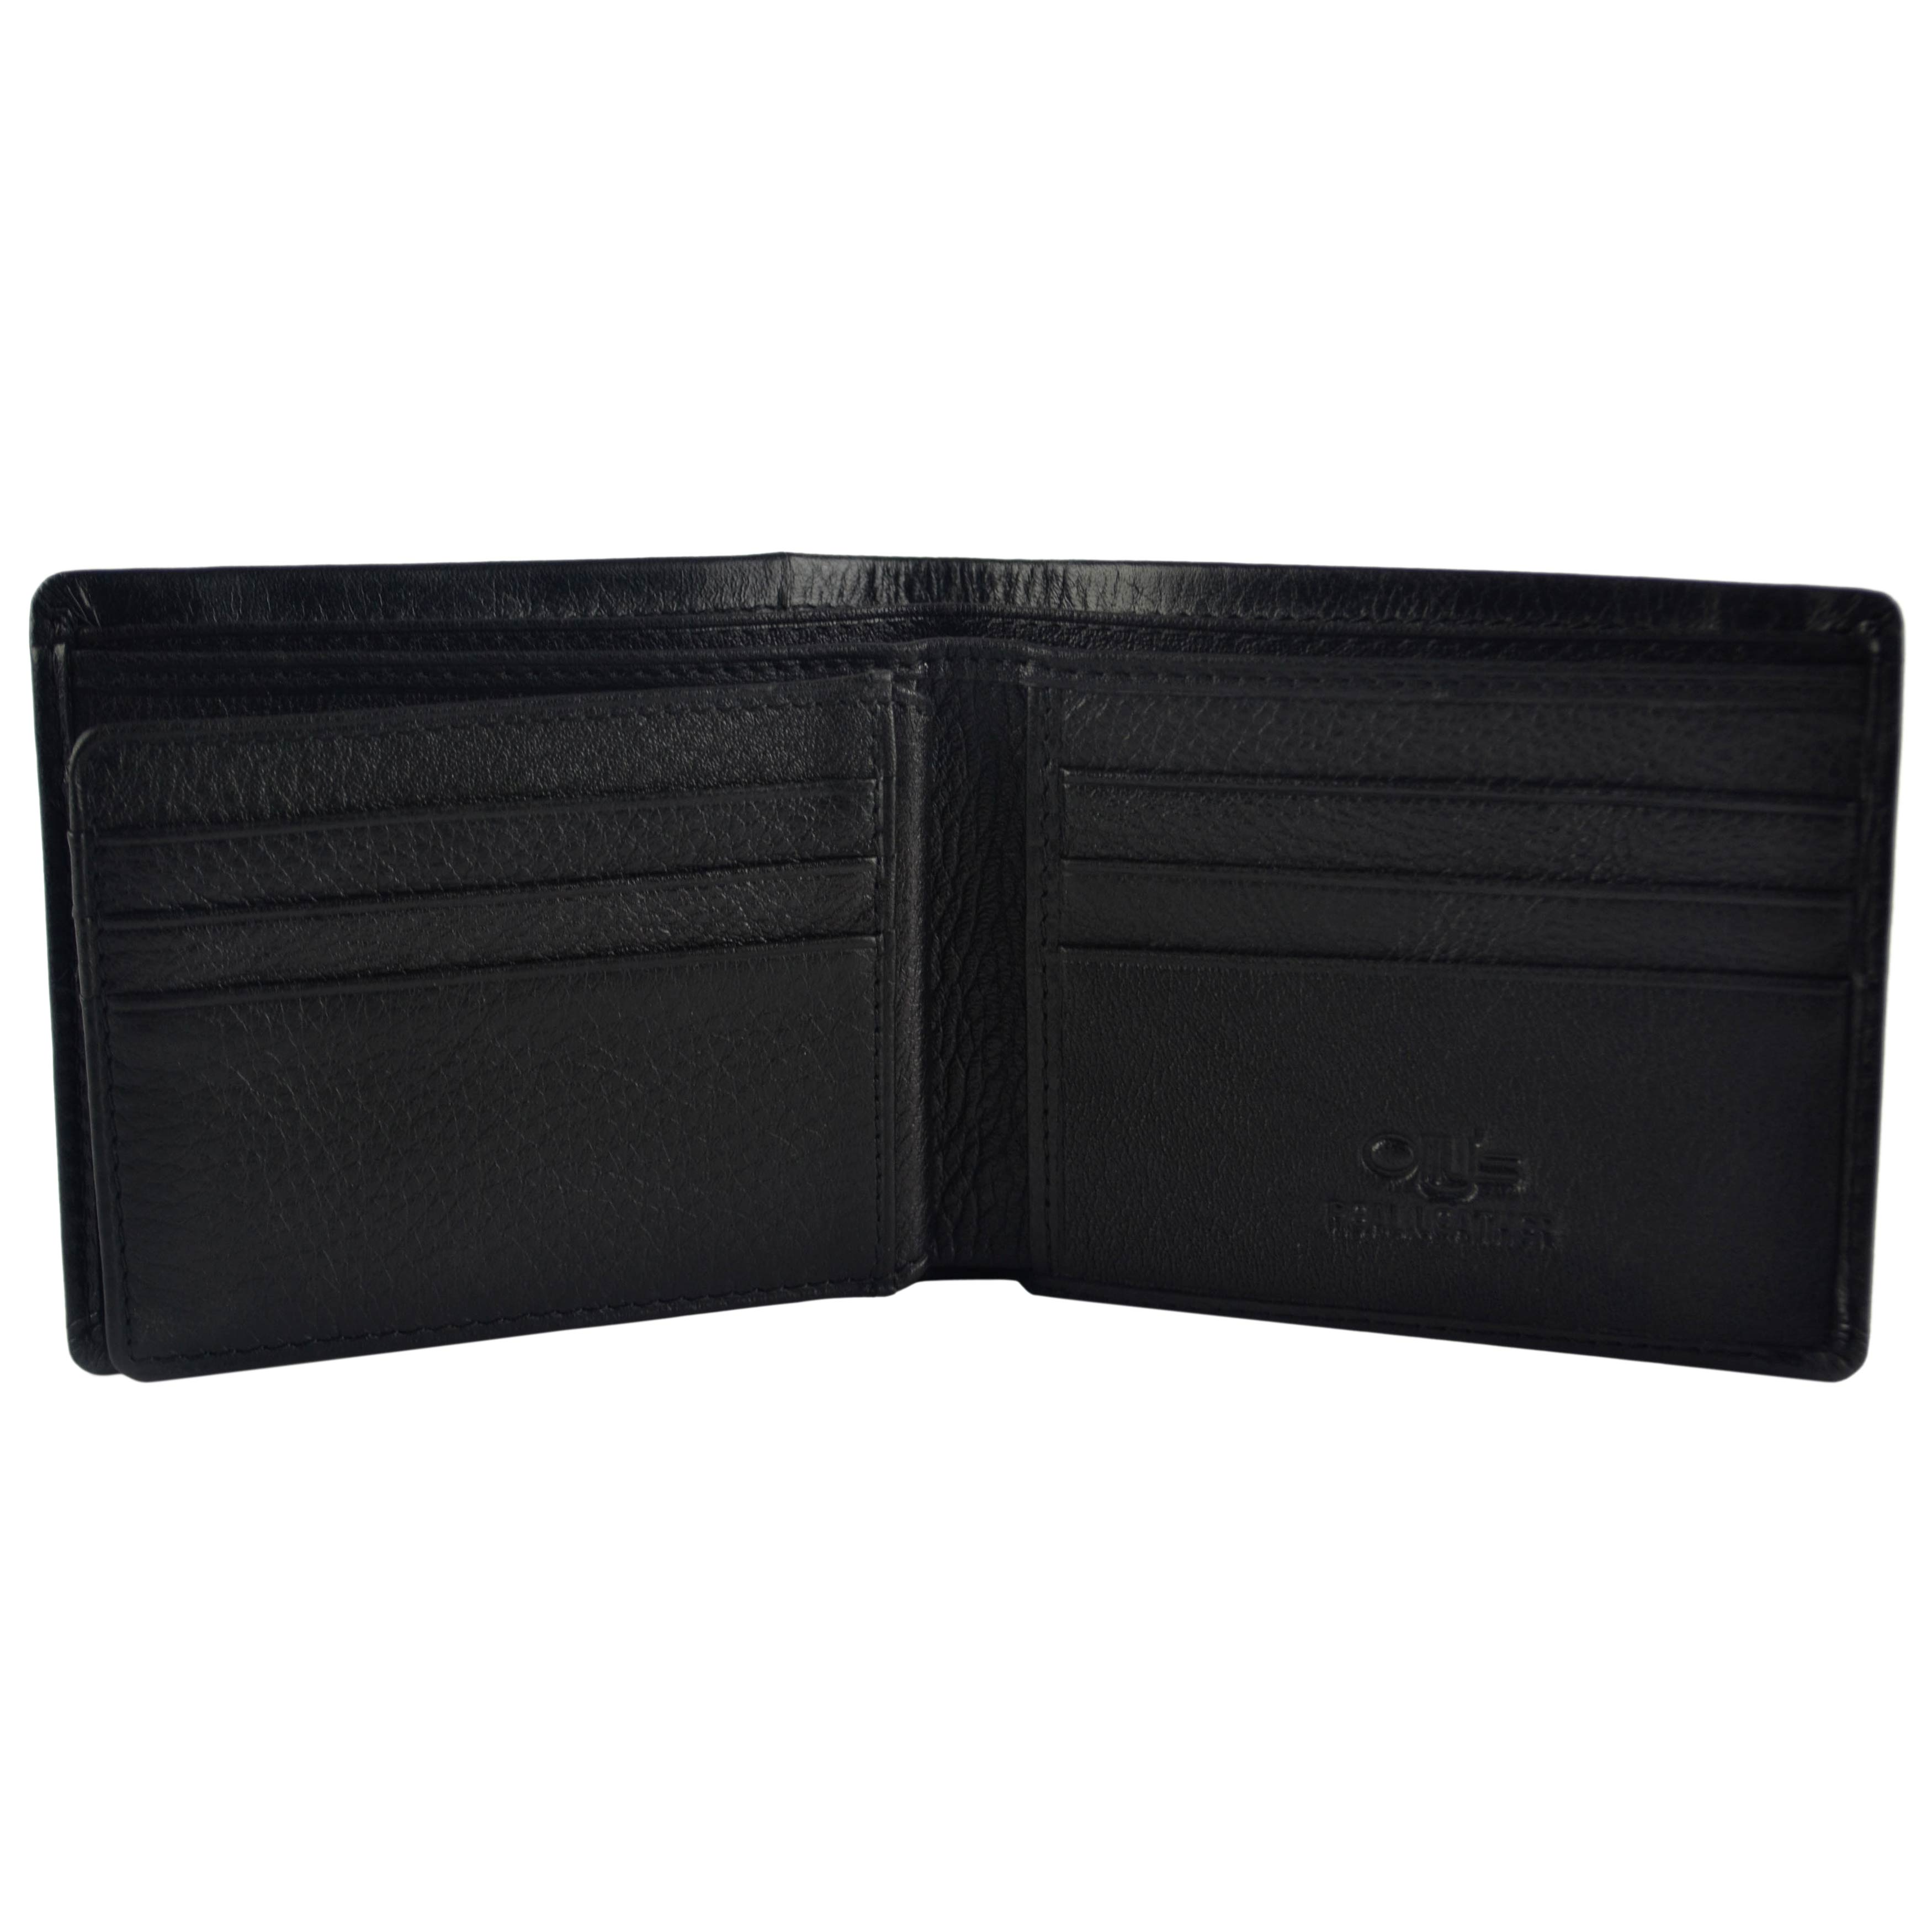 thumbnail 5 - Mens-Fine-Grain-Classic-Leather-Wallet-by-Olly-039-s-Wilson-Collection-Gift-Box